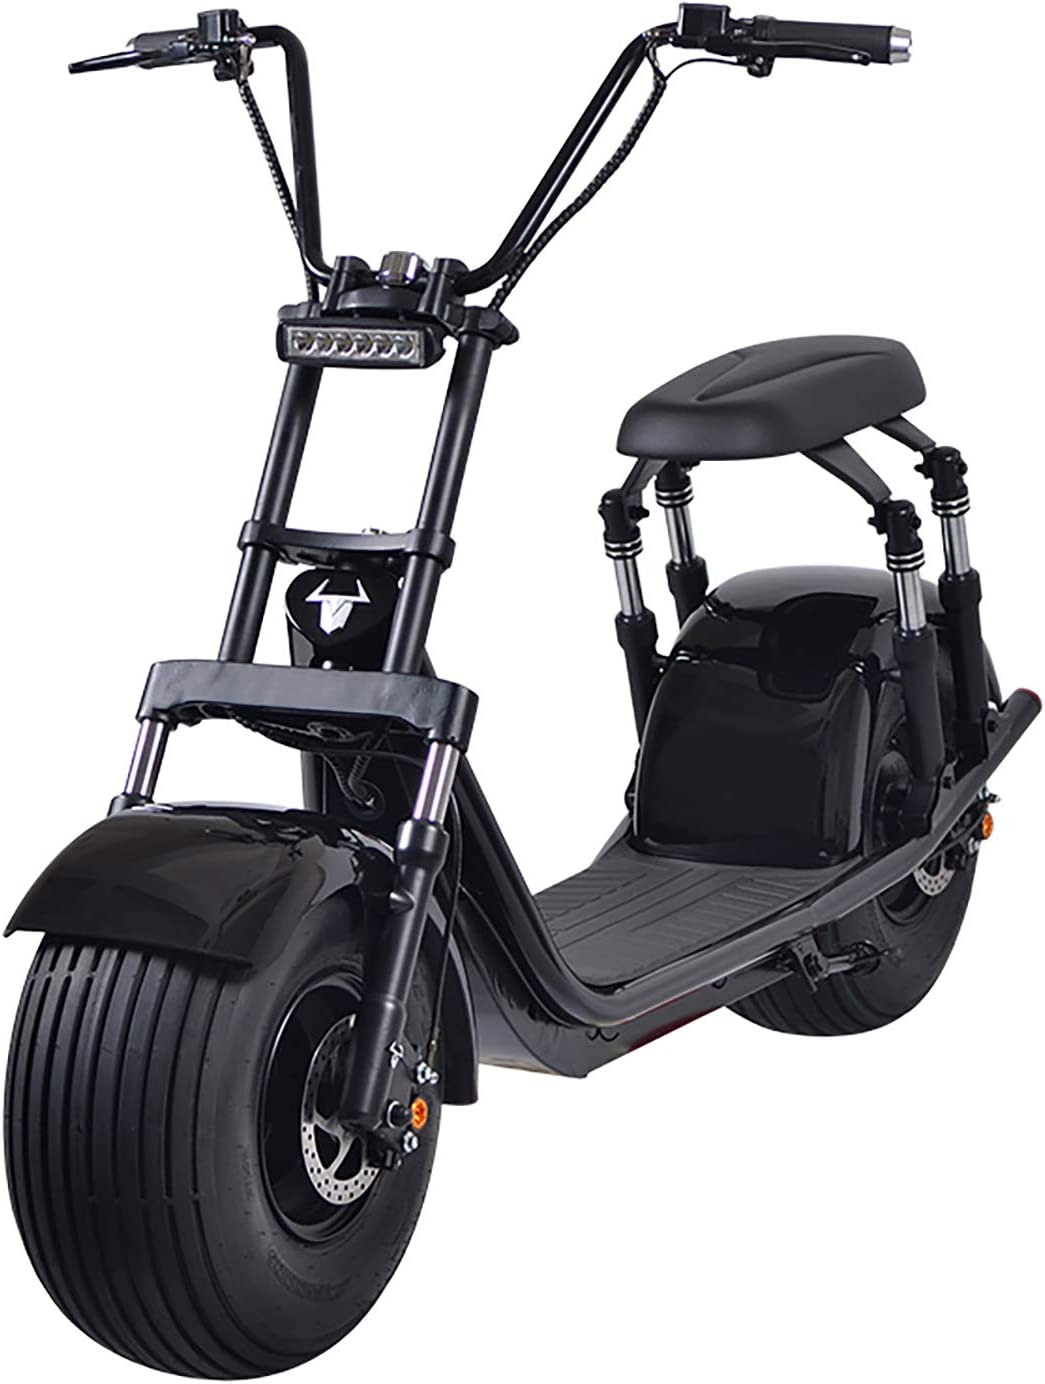 5 Best Fat Tire Electric Scooter – Review 2021